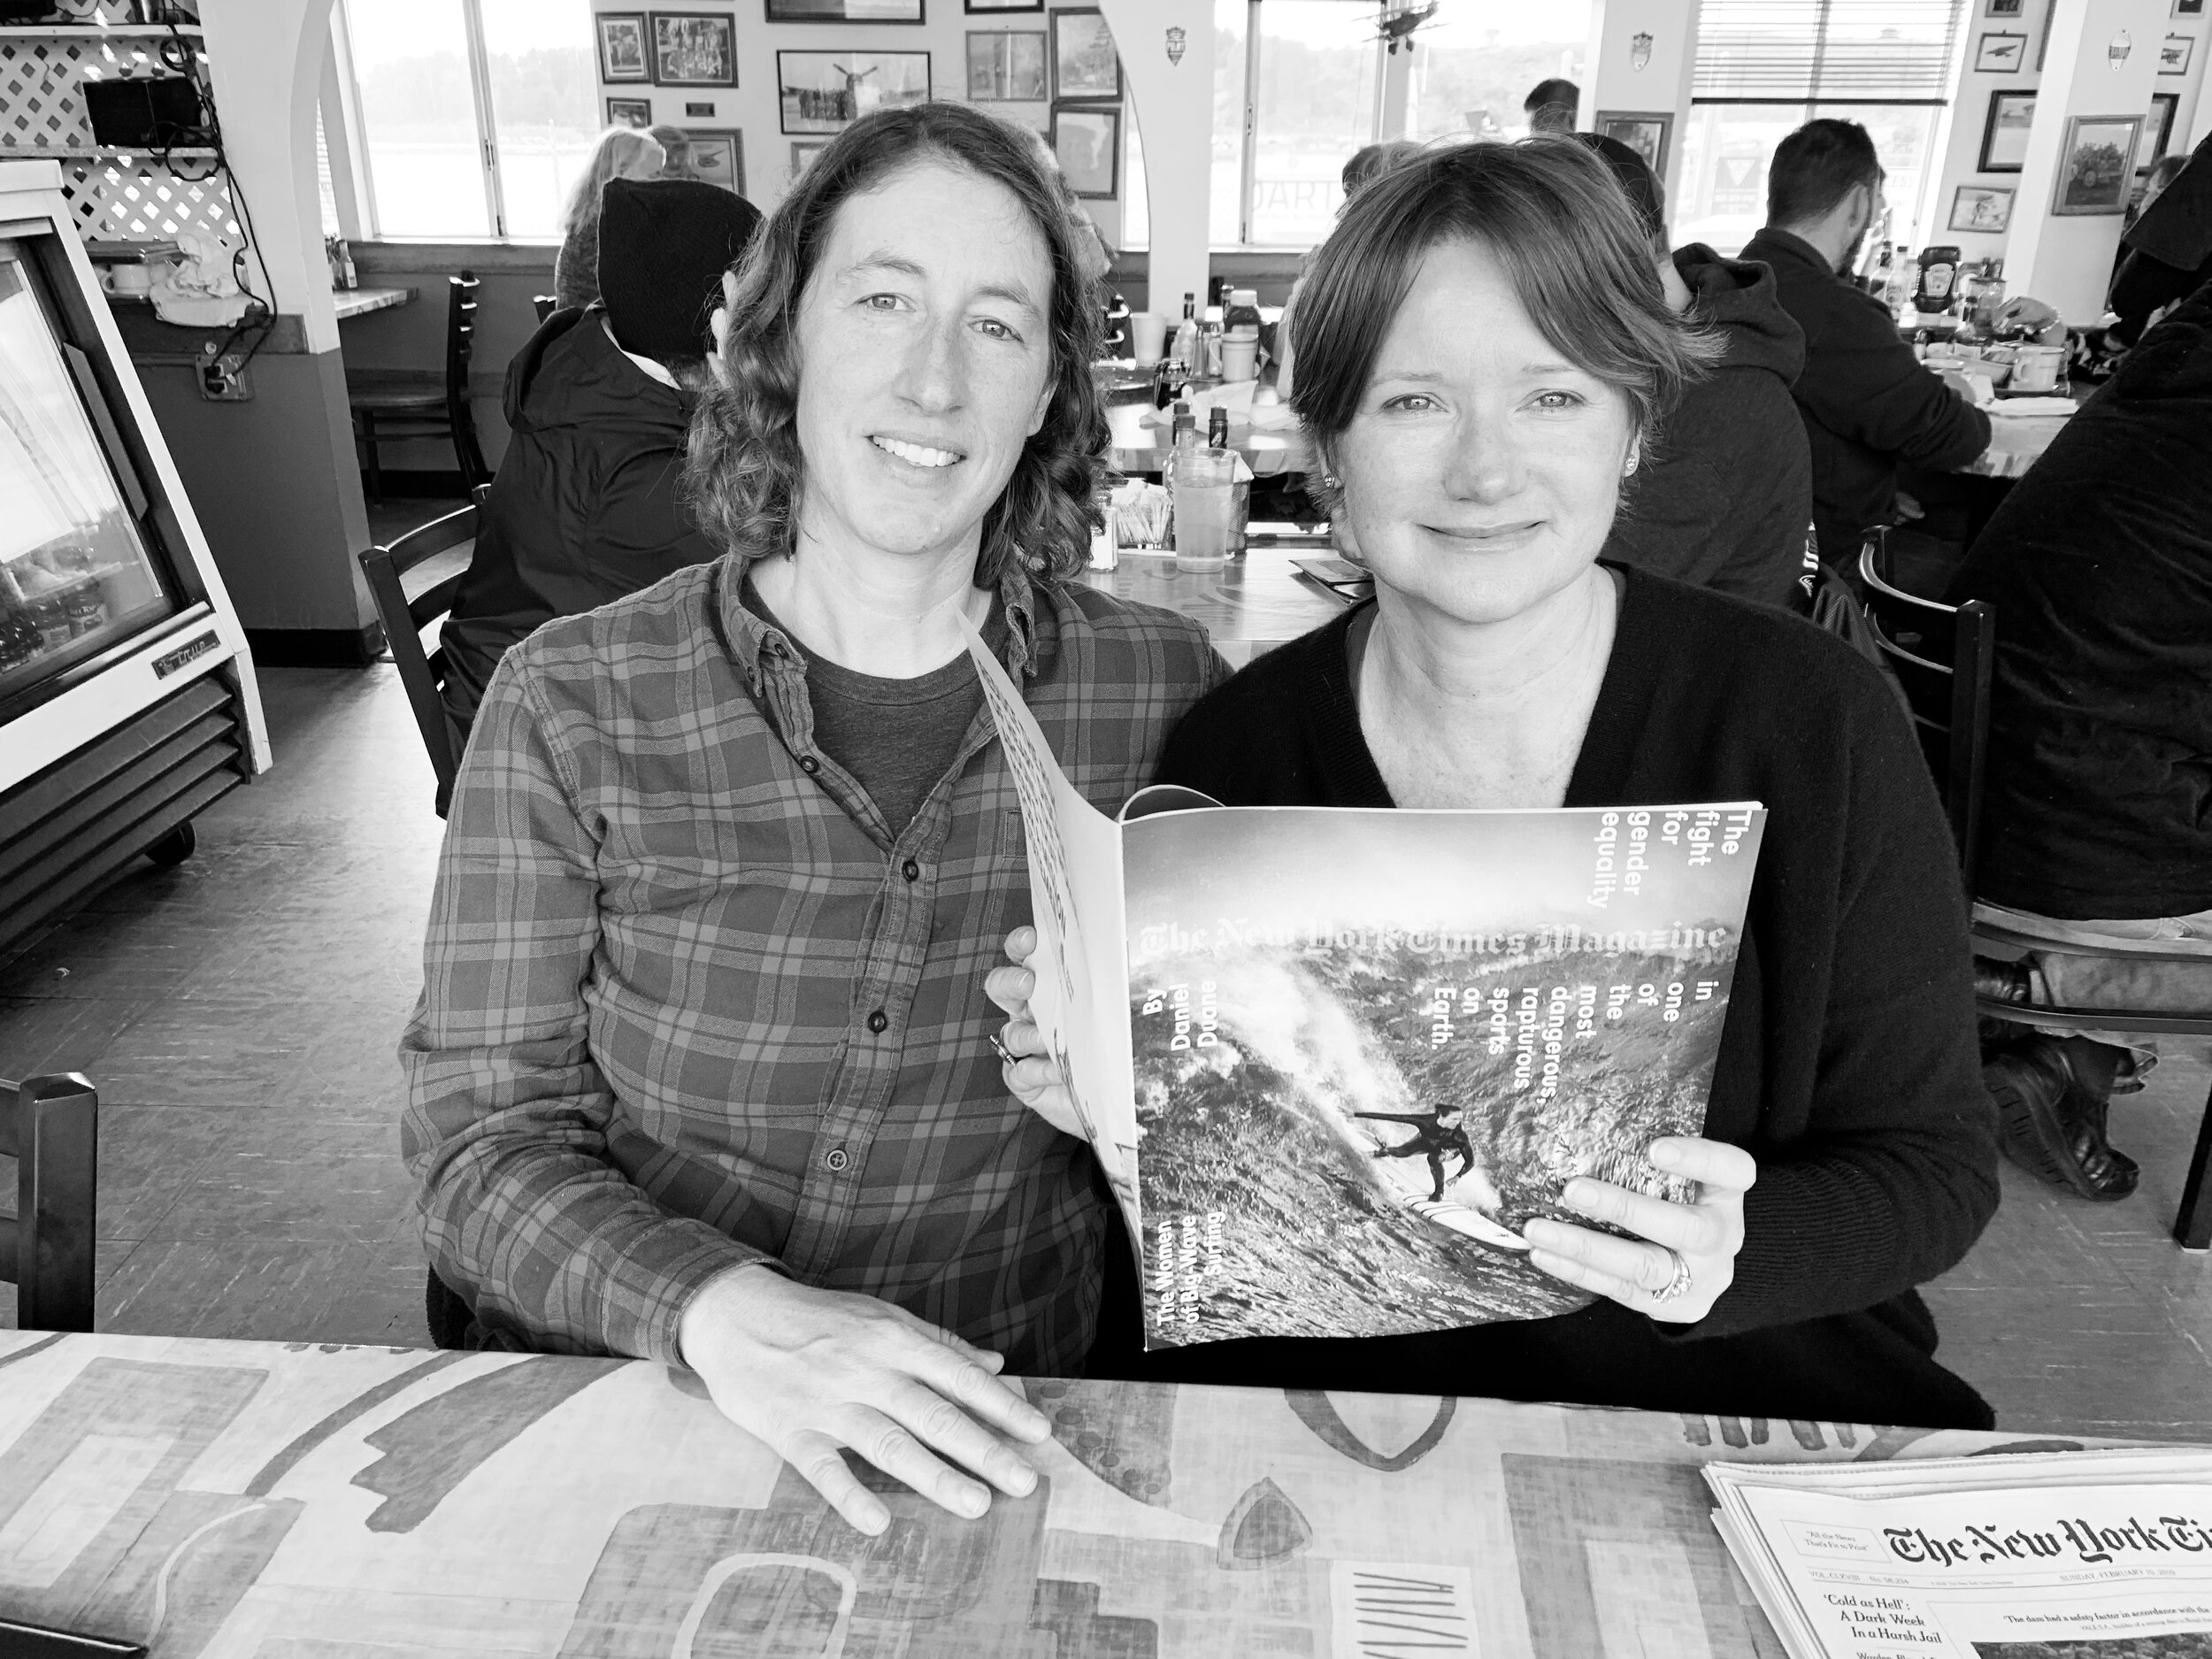 Aimee Luthringer & Sabrina Brennan reading the New York Times Mag at 3-Zero Cafe in Moss Beach, CA